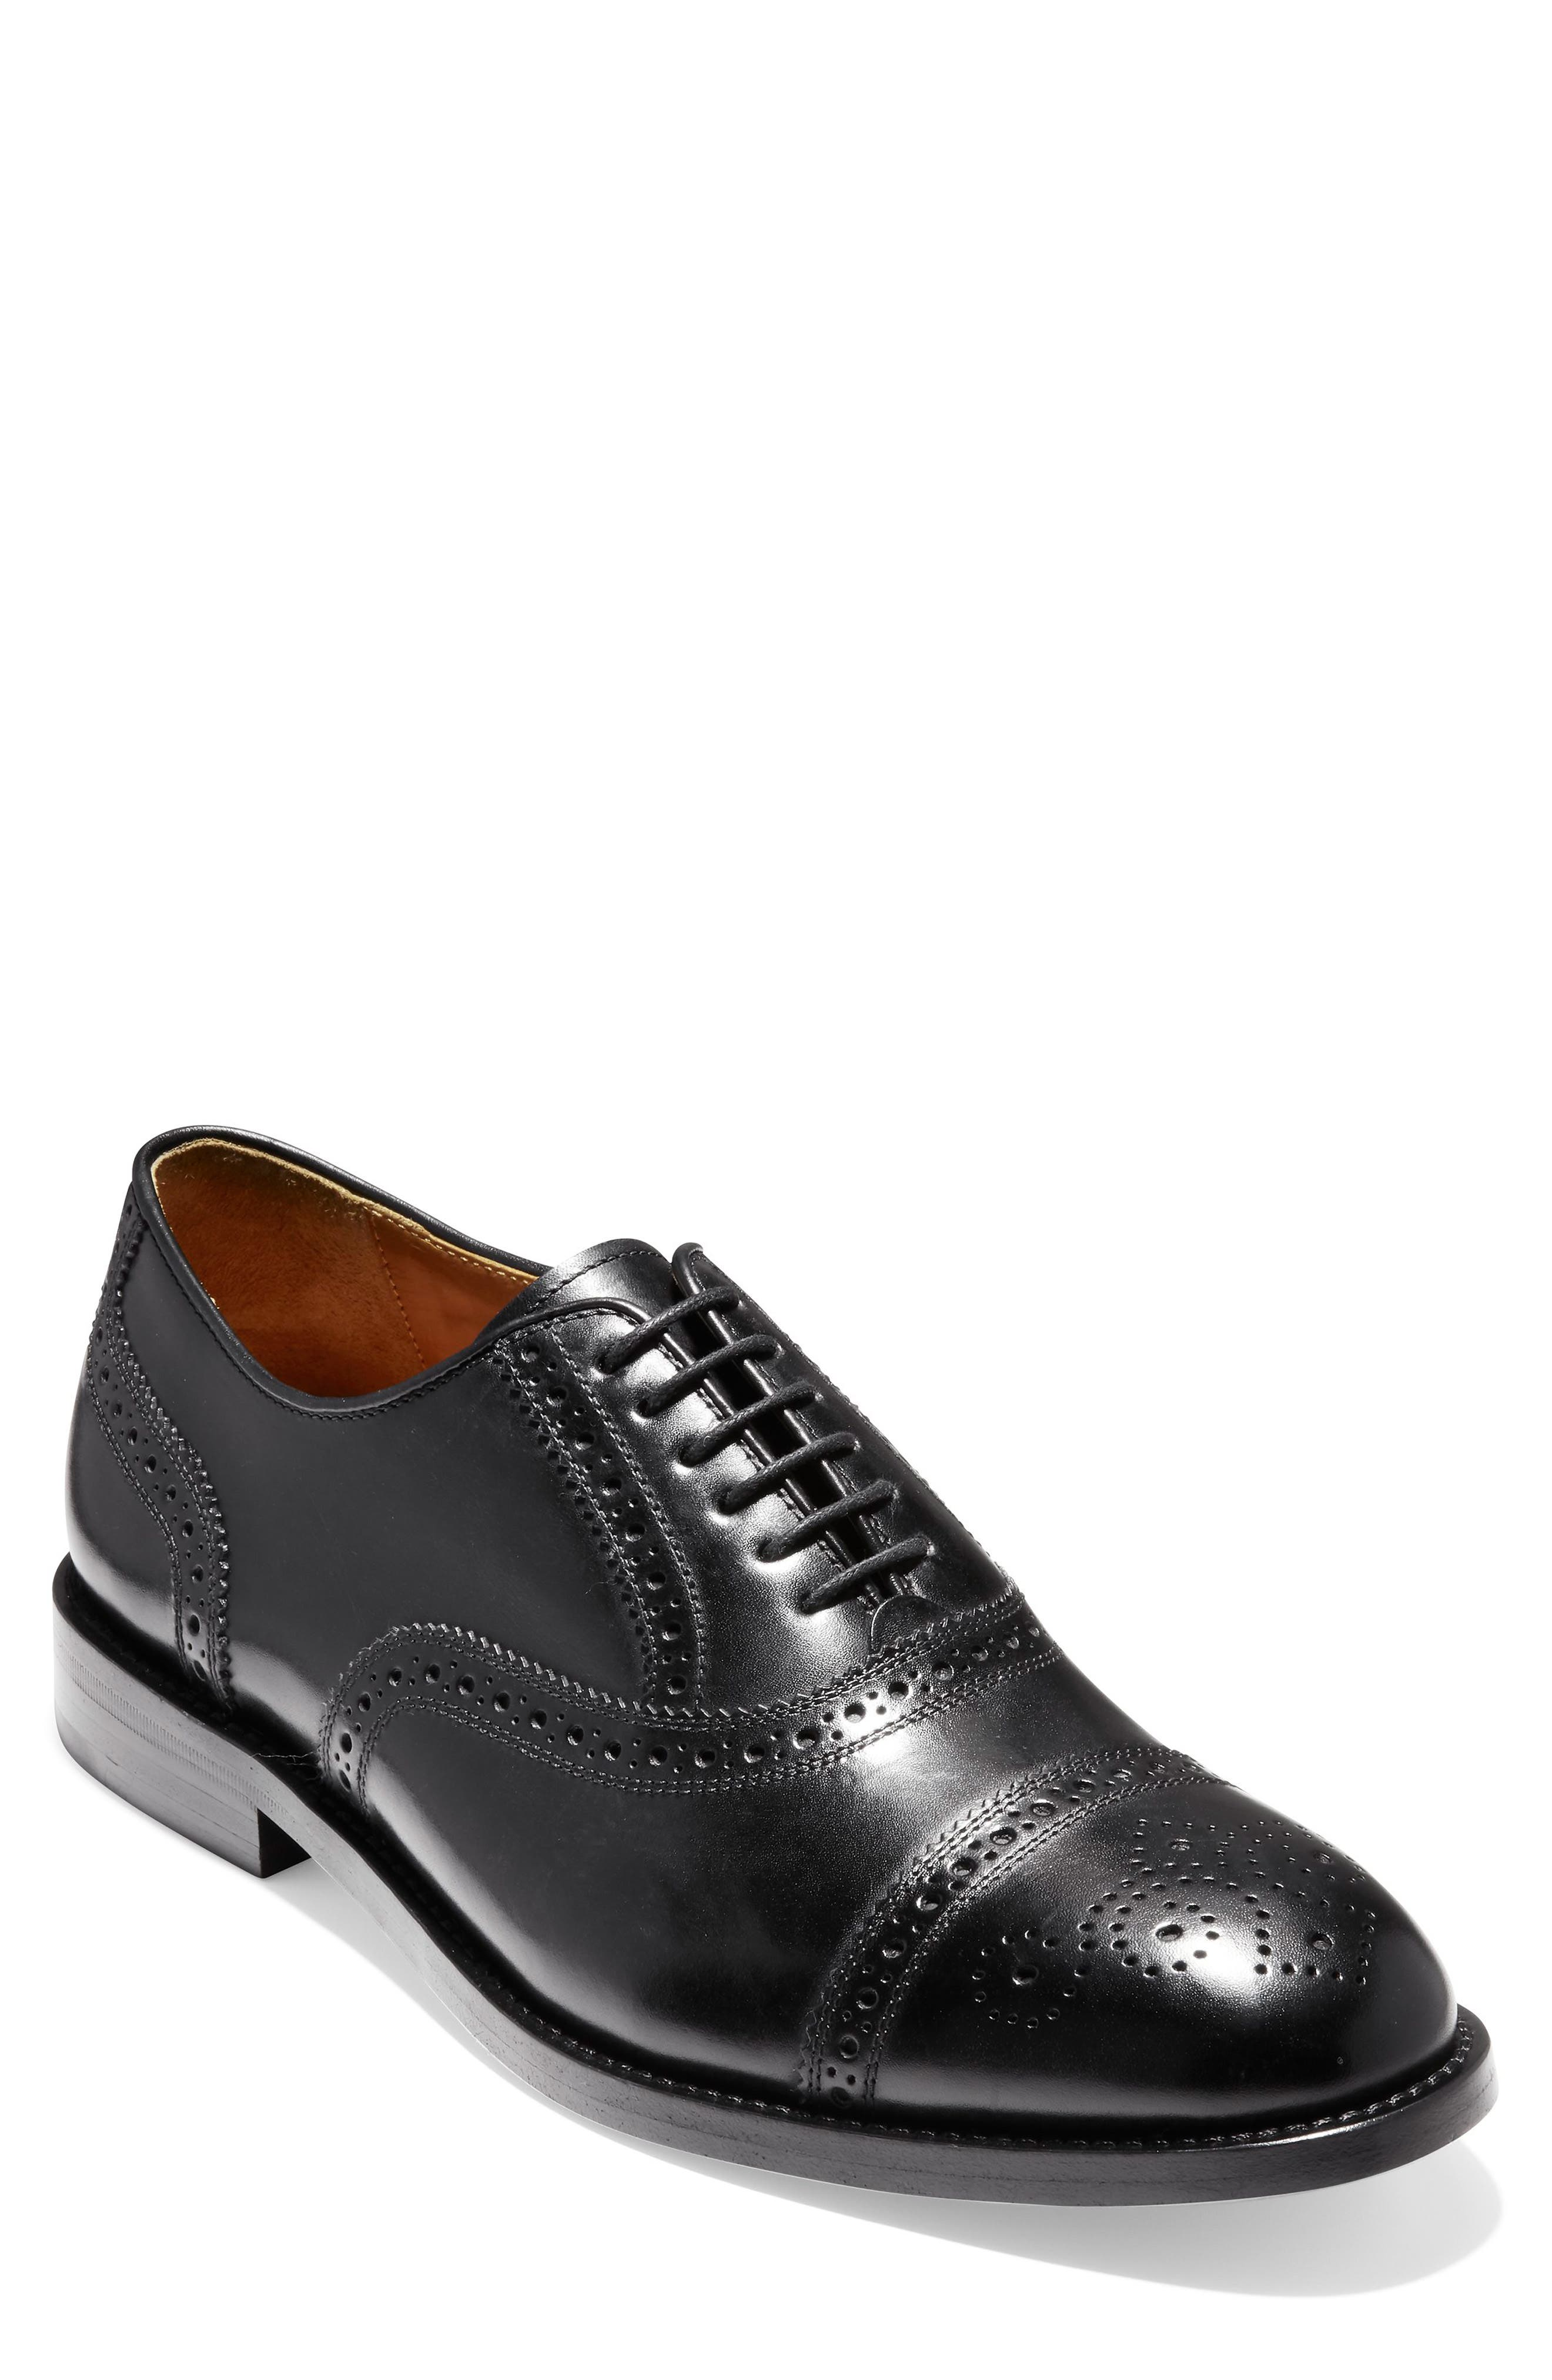 American Classics Kneeland Cap Toe Oxford,                             Main thumbnail 1, color,                             BLACK LEATHER